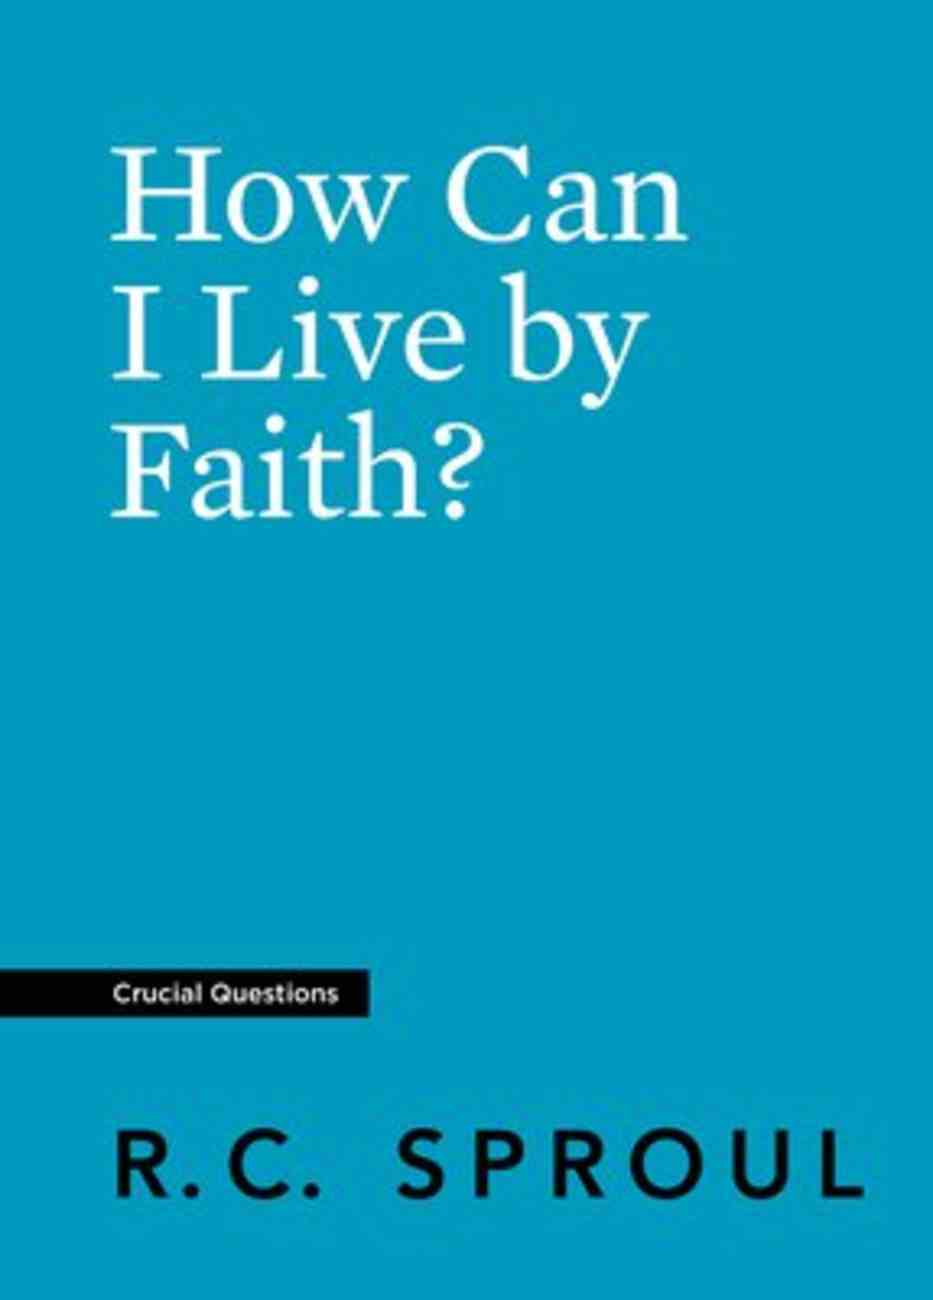 How Can I Live By Faith? (Crucial Questions Series) Paperback